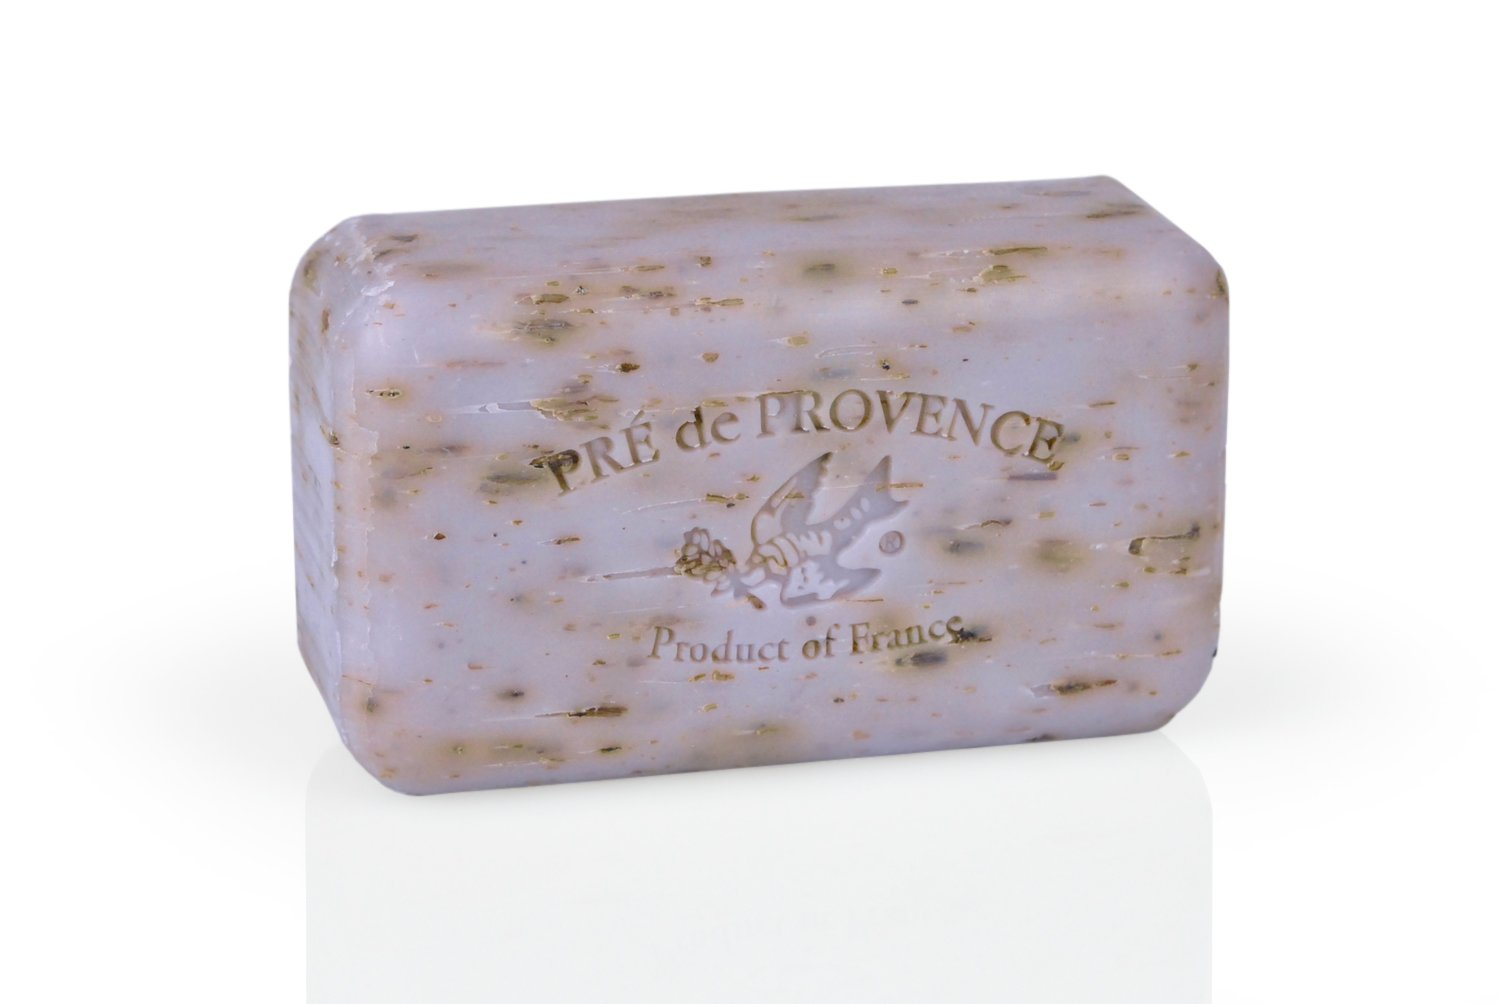 Pre' De Provence Artisanal French Soap Bar Enriched With Shea Butter, Lavender, 150 Gram